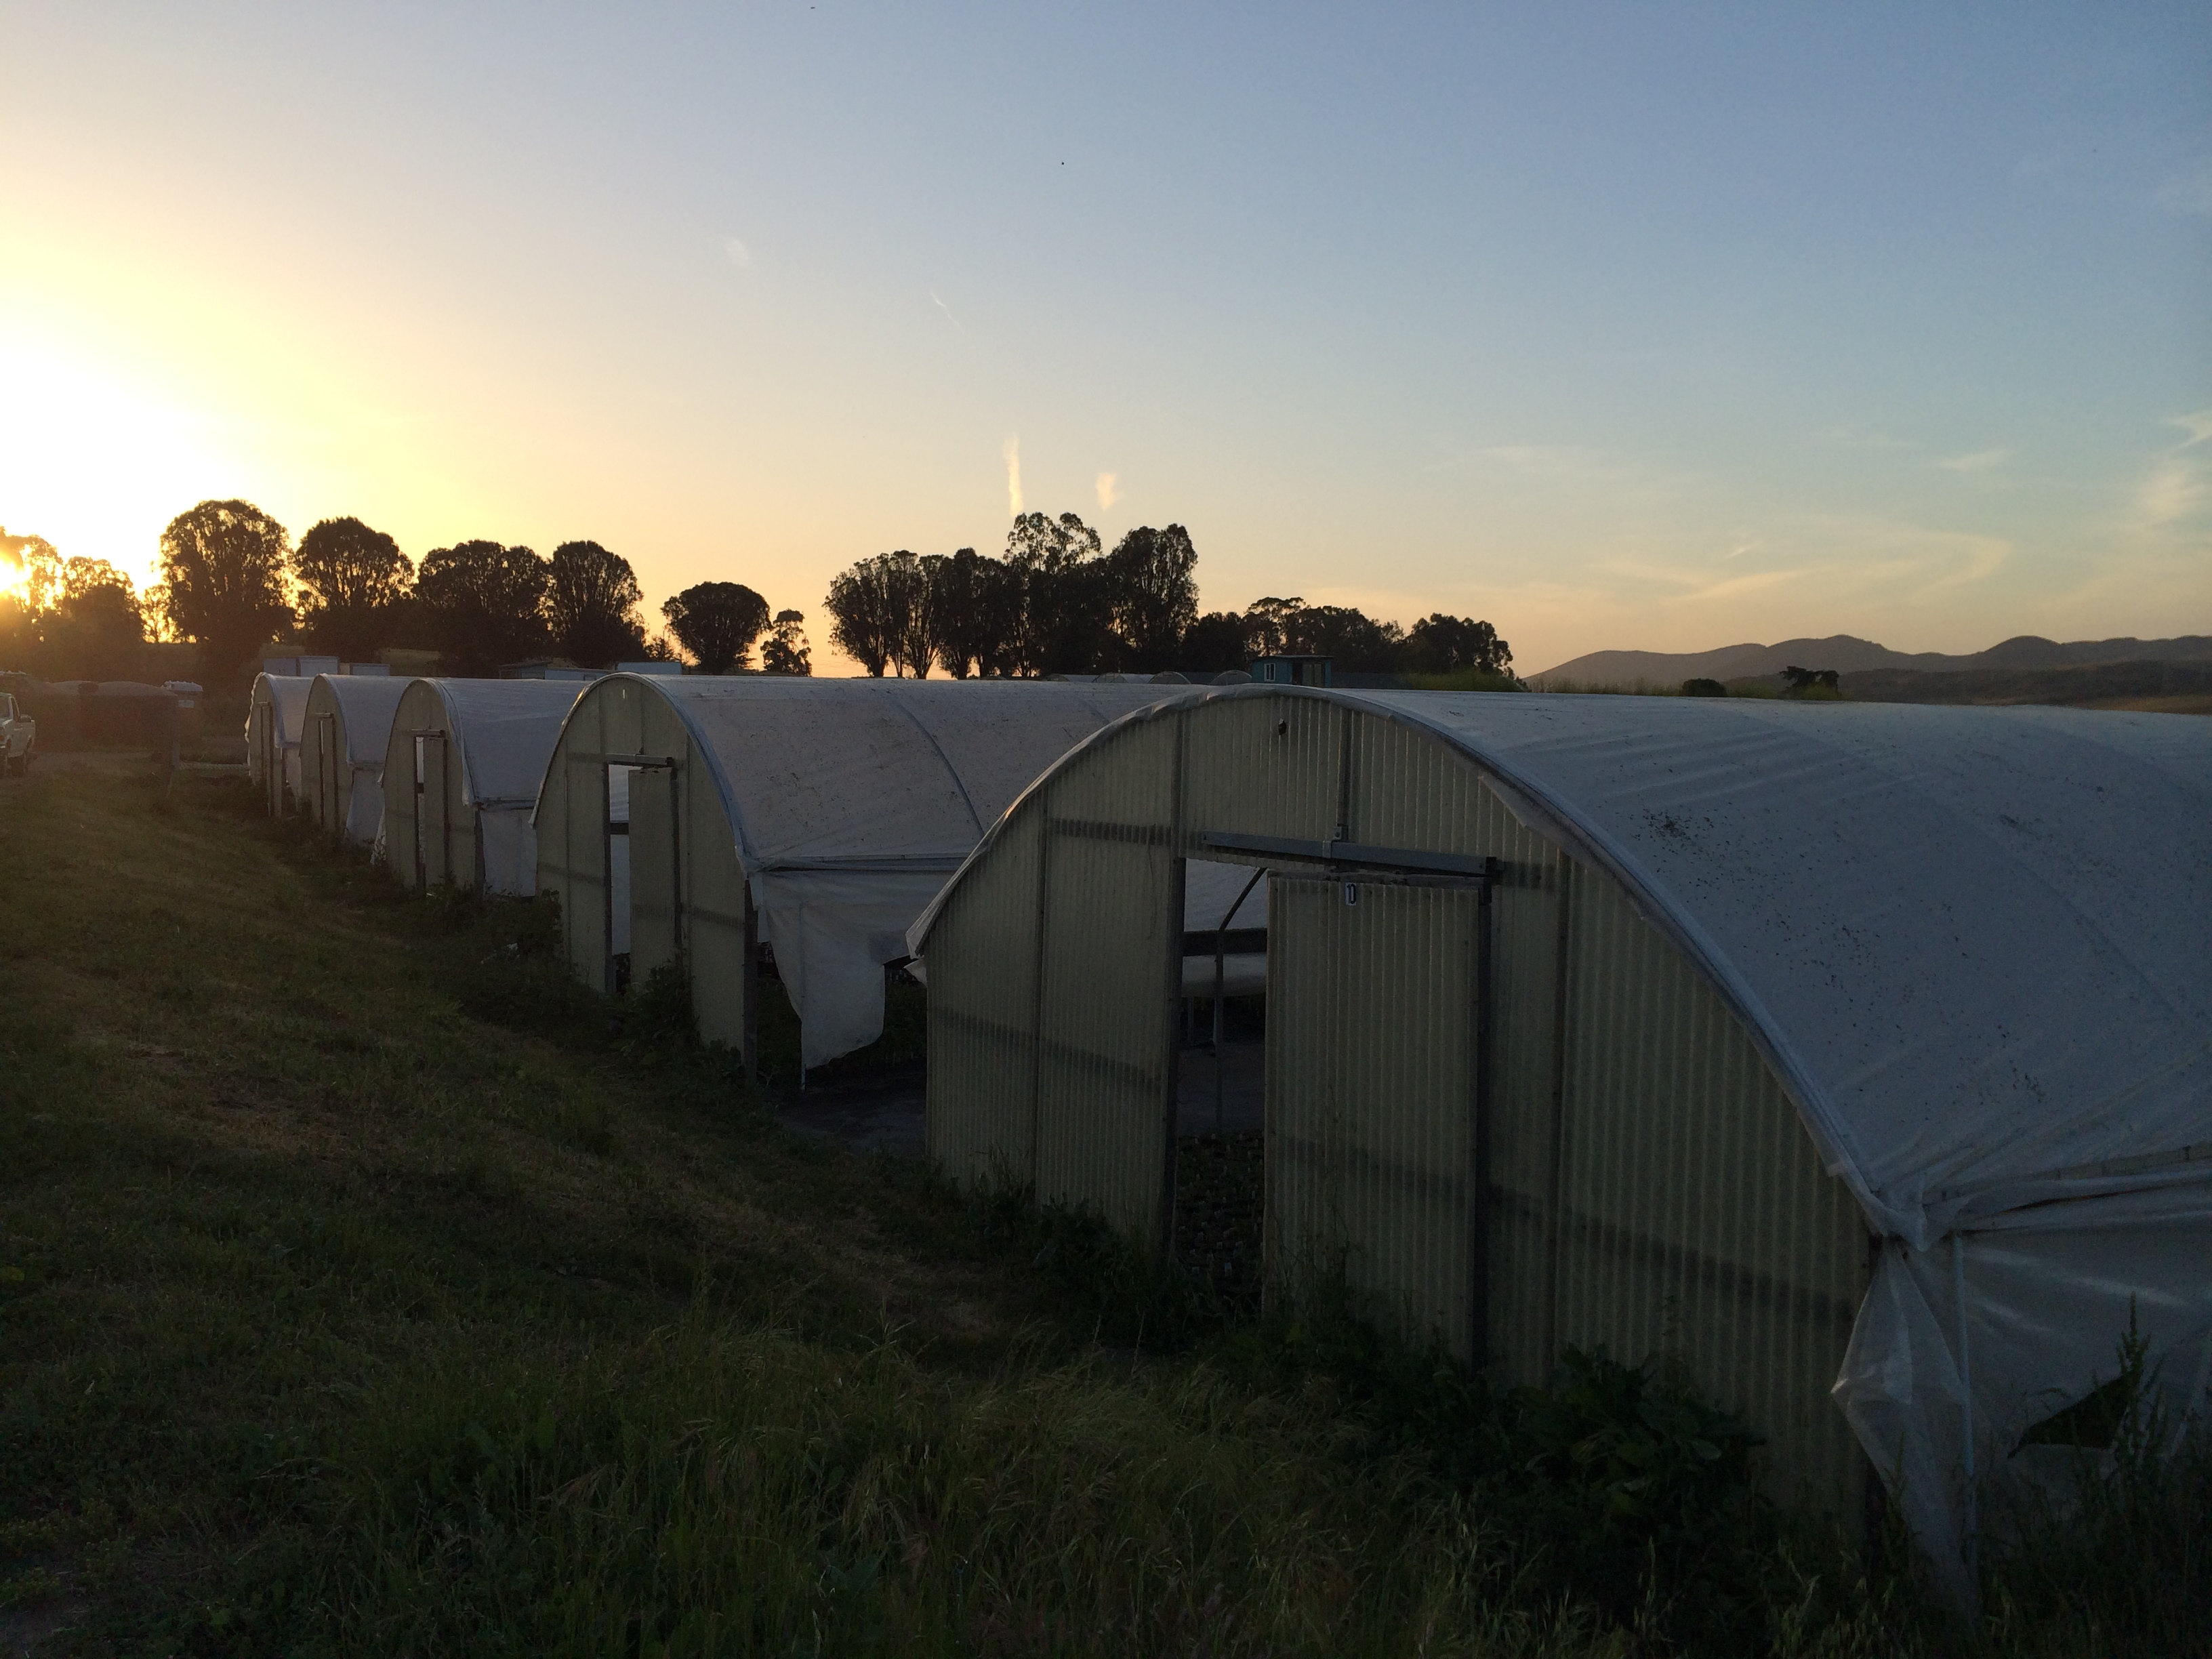 Greenhouses at dusk